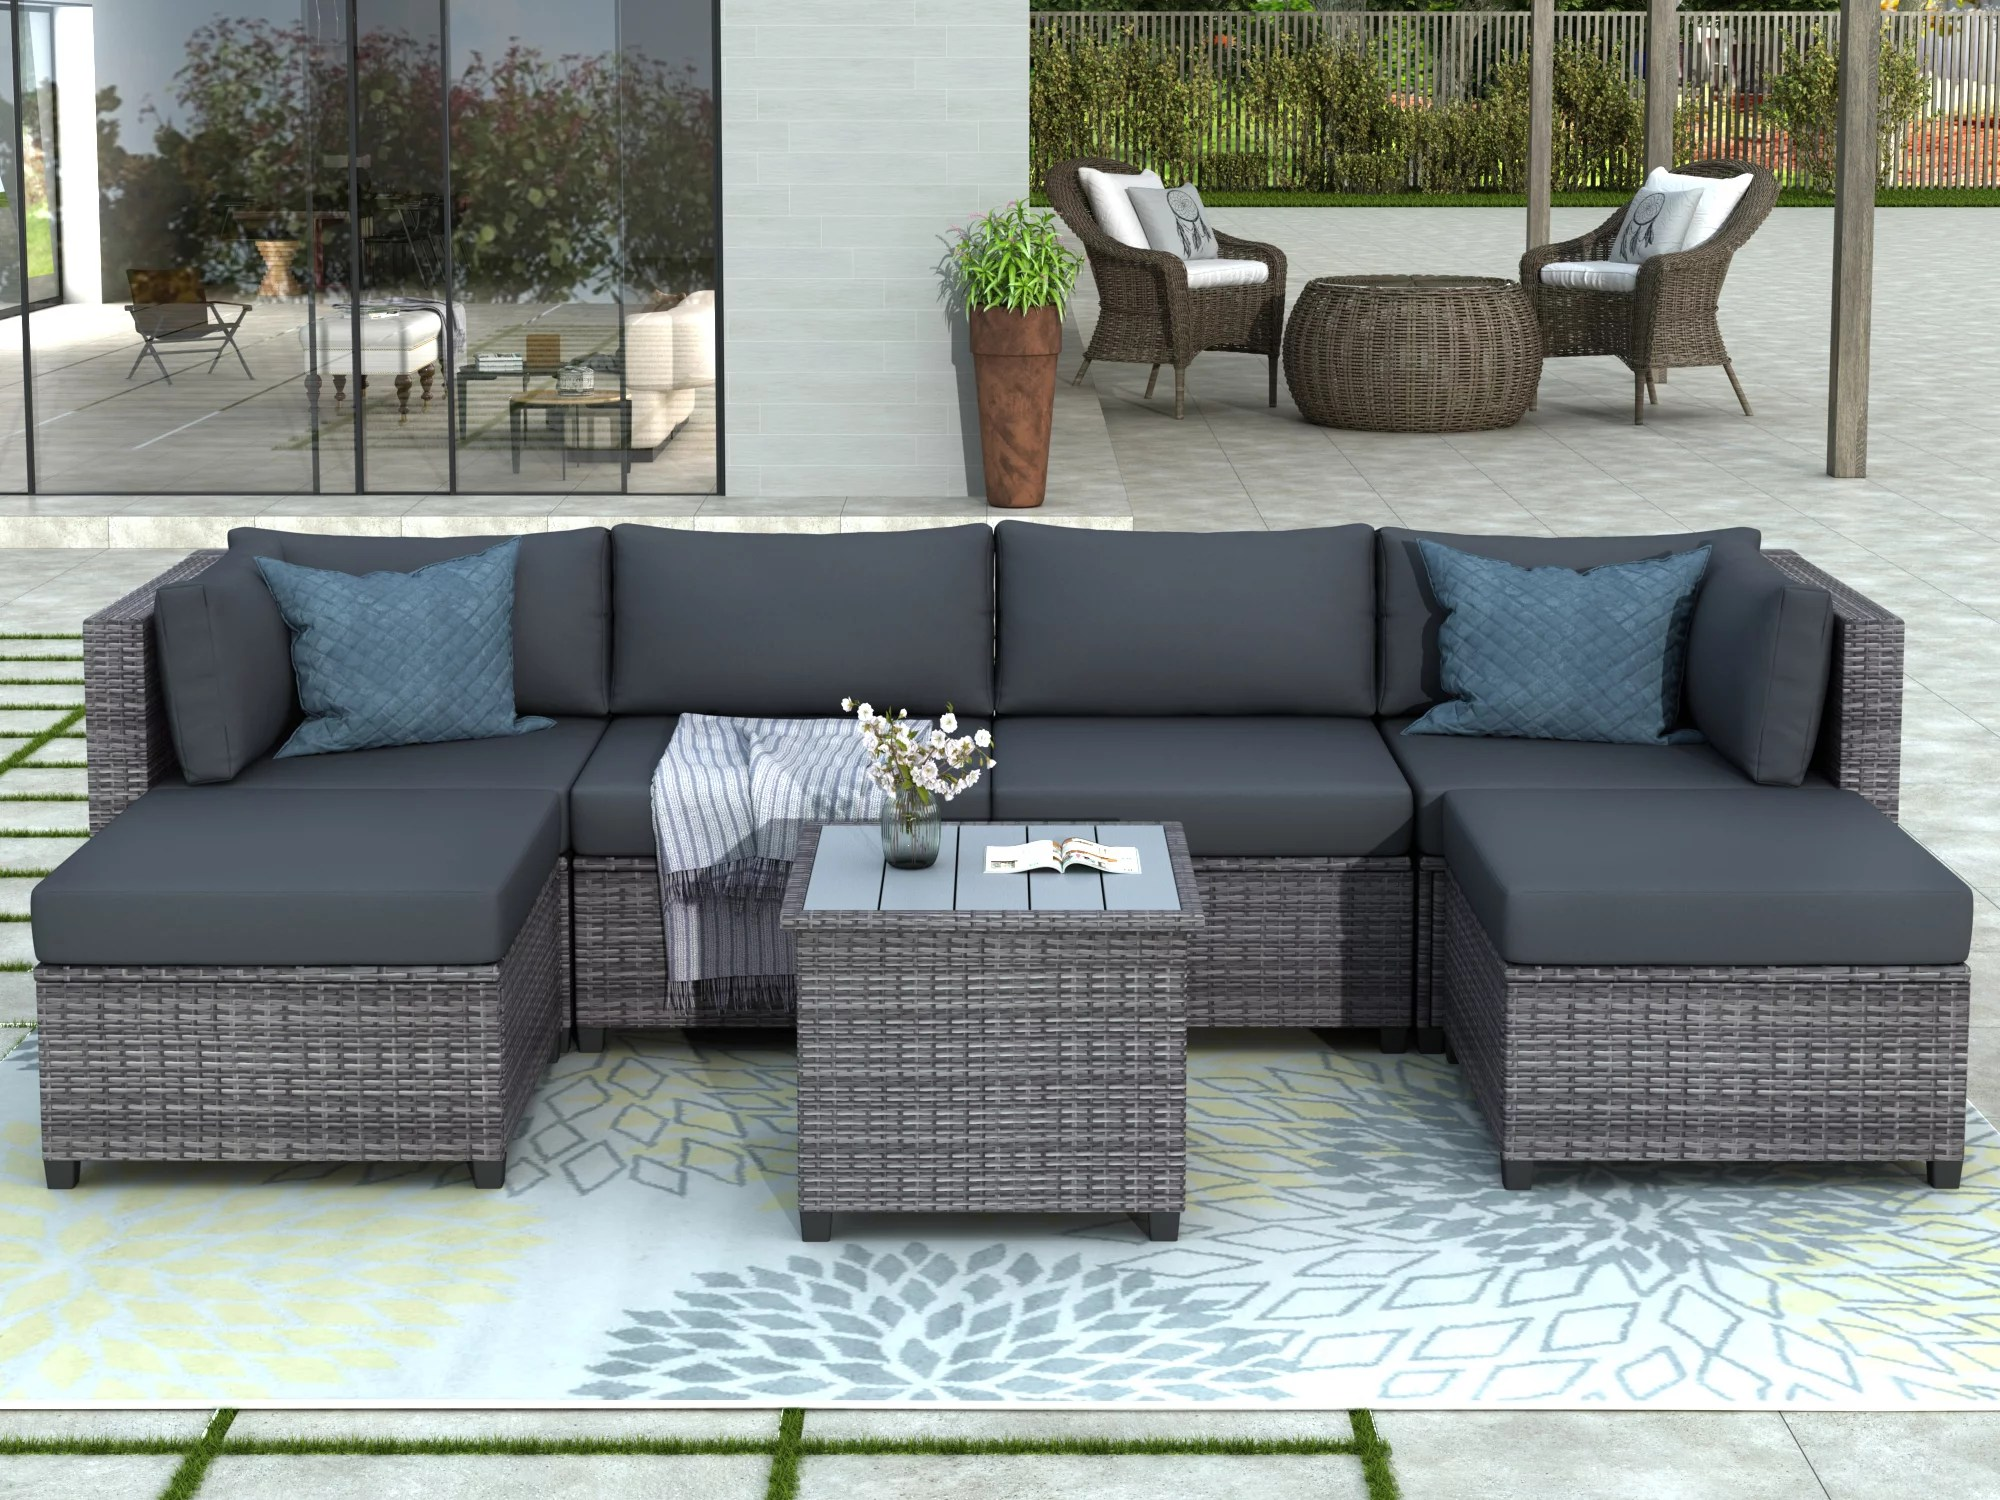 patio conversation set 7 piece outdoor wicker furniture set with 4 rattan wicker chairs 2 ottoman coffee table all weather patio sectional sofa